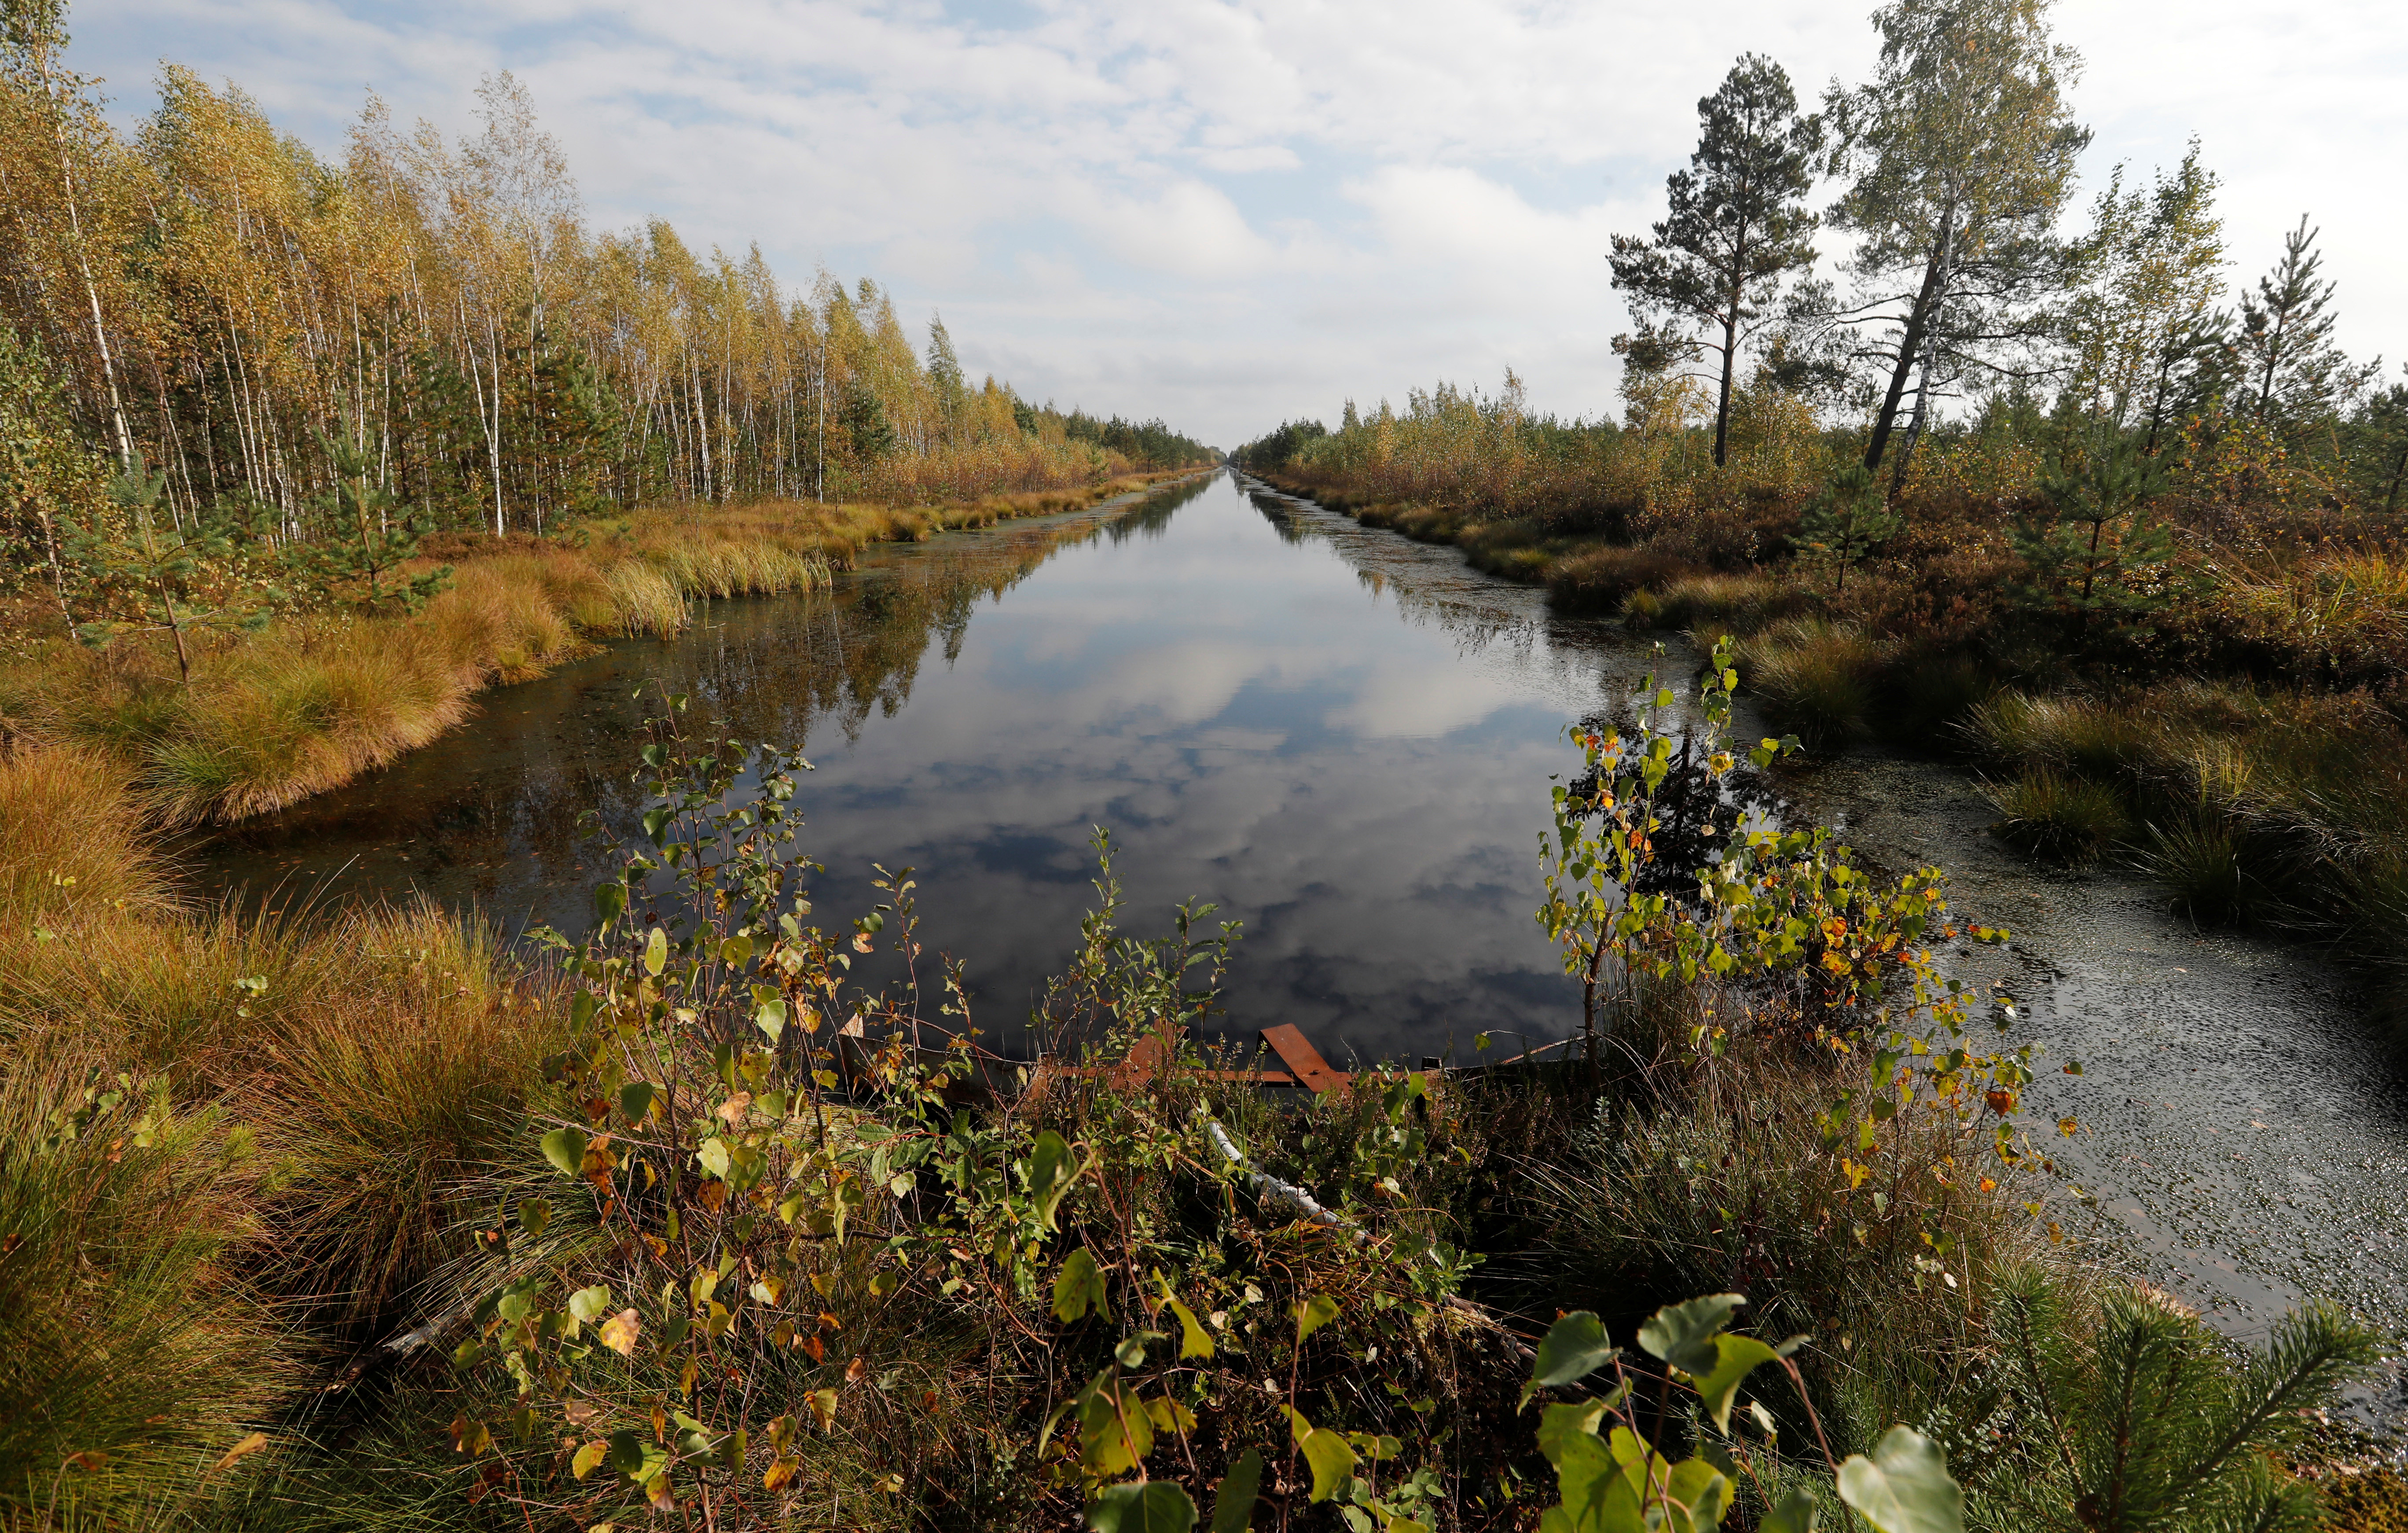 """A channel, blocked with a dam, is seen at a marsh called Galoye, near the town of Cherven, Belarus October 2, 2018. The new GEF (Global Environment Facility) funded and UNDP (United Nations Development Programme) implemented """"Wetlands"""" project, which will help to restore 12,456 ha of the degraded peatland forests, and decisions on restoration/wise management of 260,000 ha of Belarusian peatland forests will be made, according to UNDP in Belarus.  REUTERS/Vasily Fedosenko - RC19D1B8C4D0"""